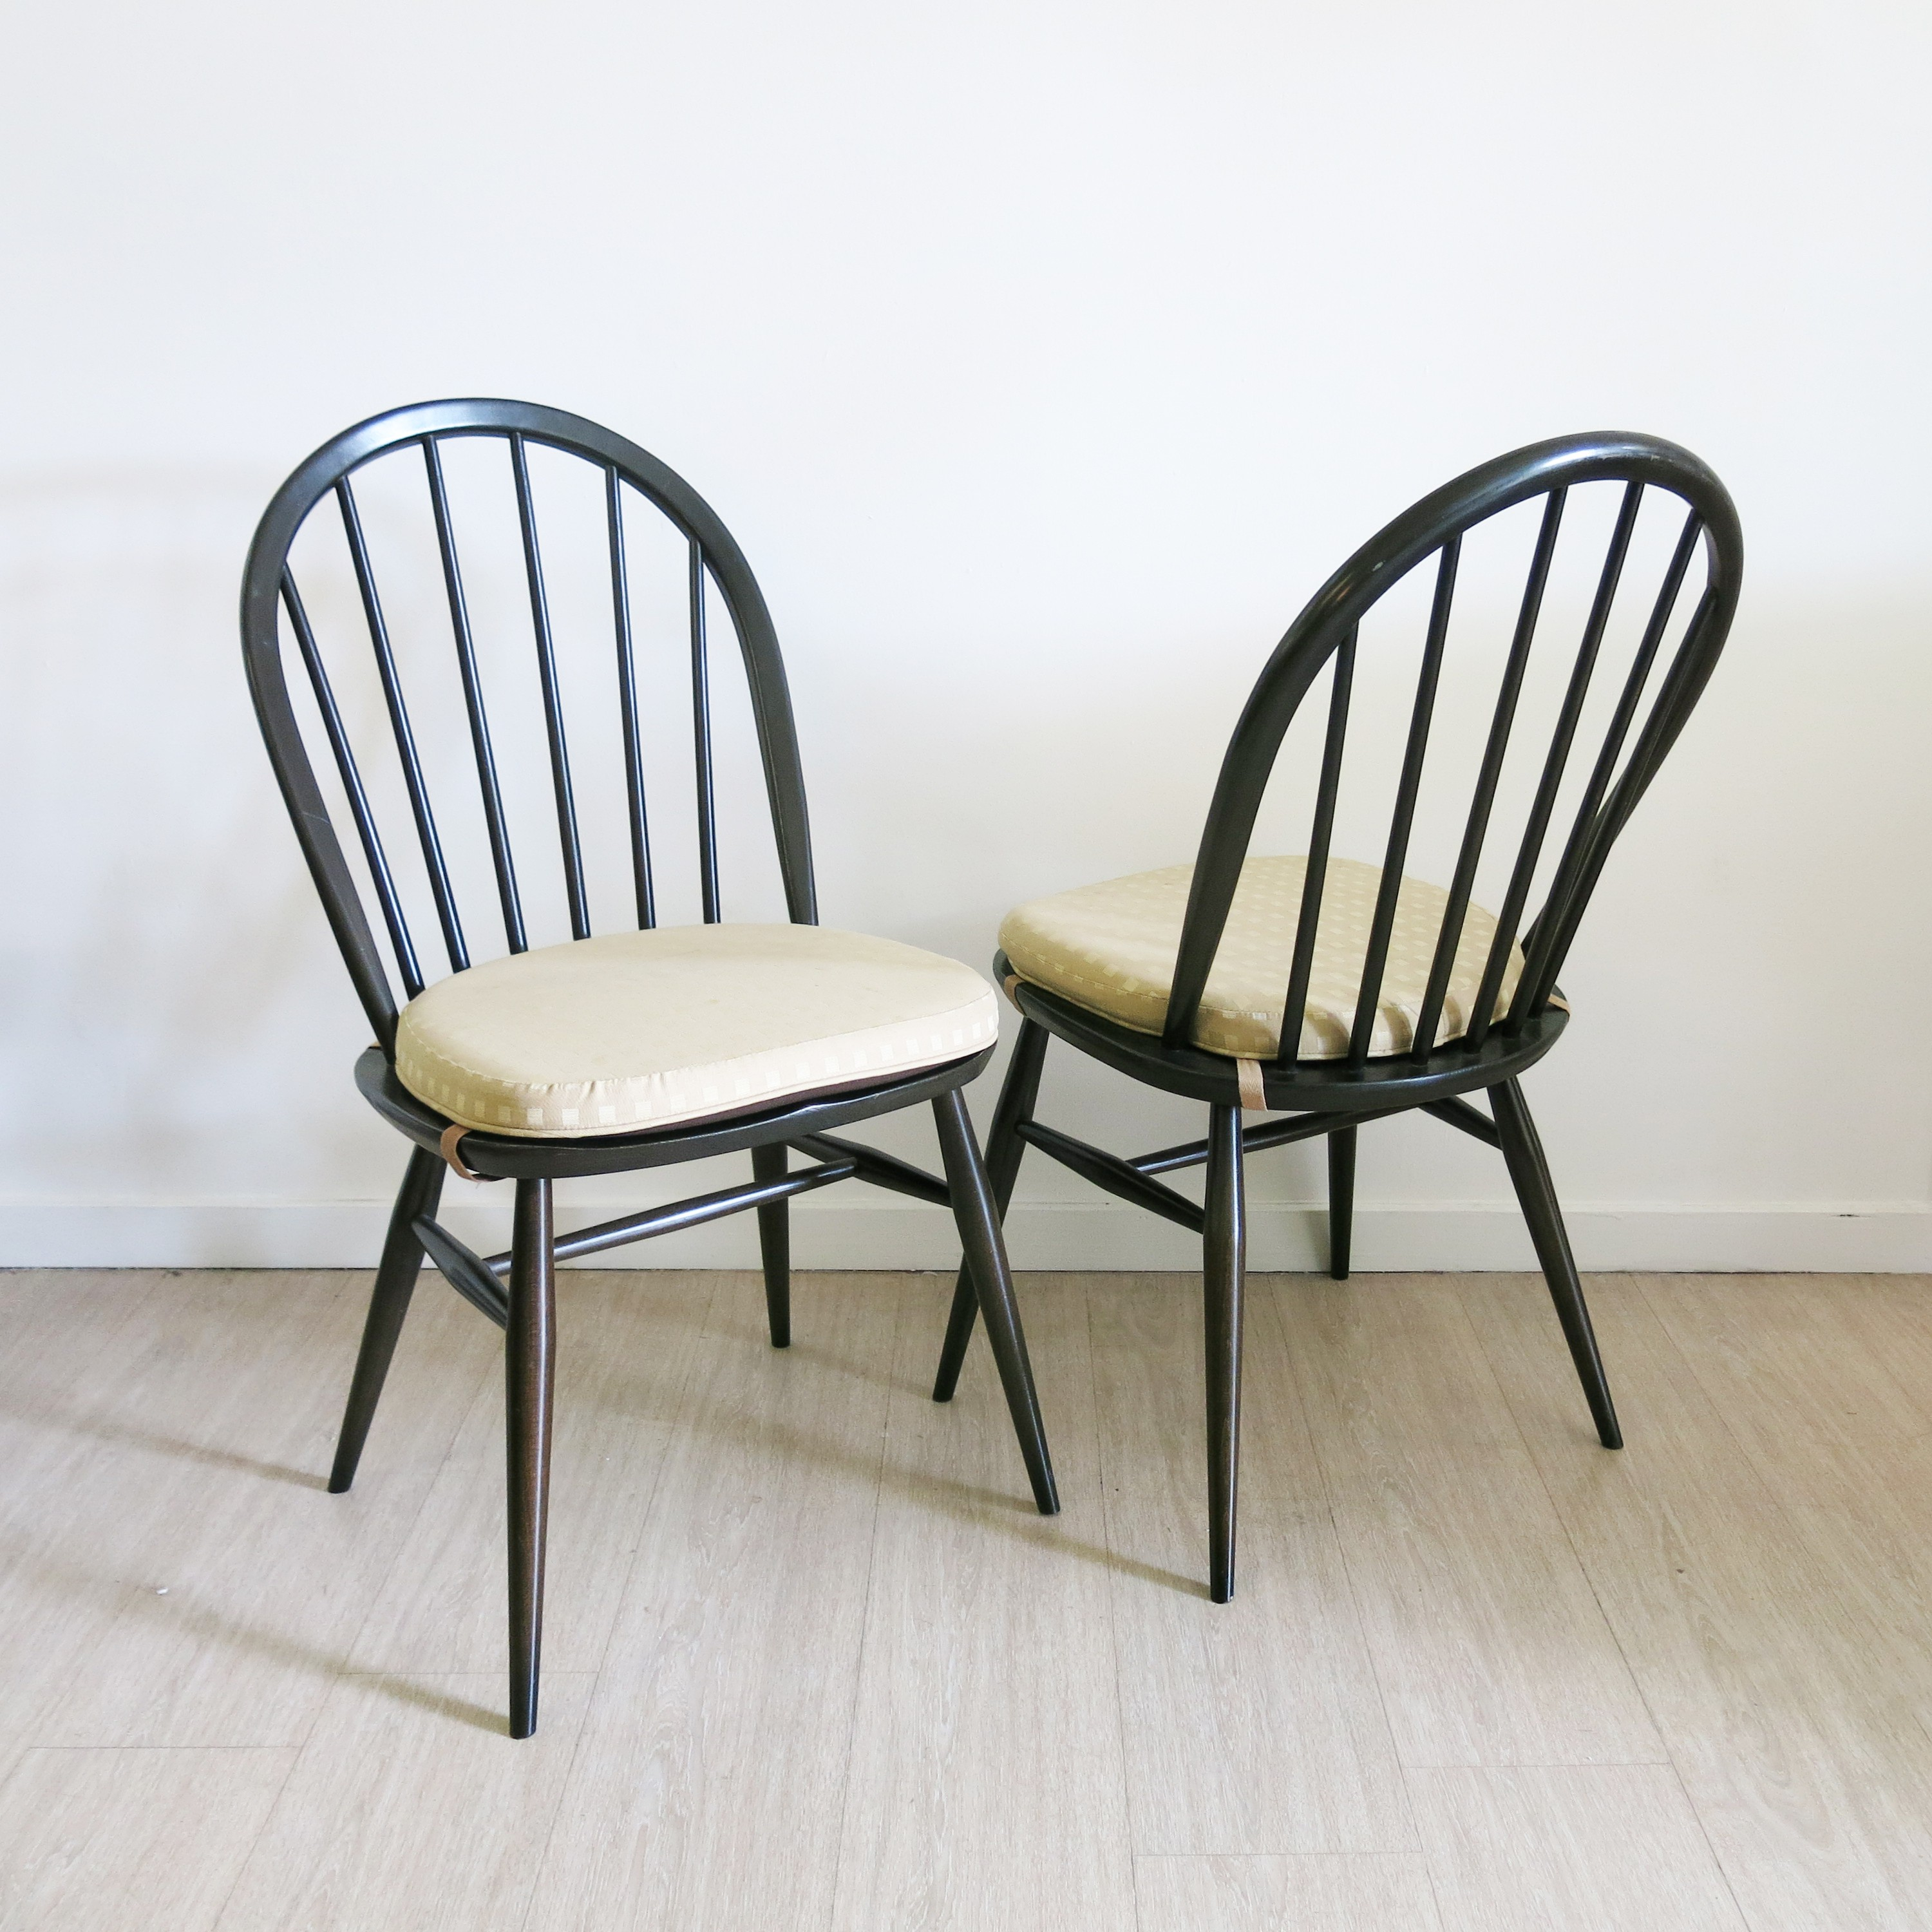 divathe windsor diva chairs antiques chair archives tag the